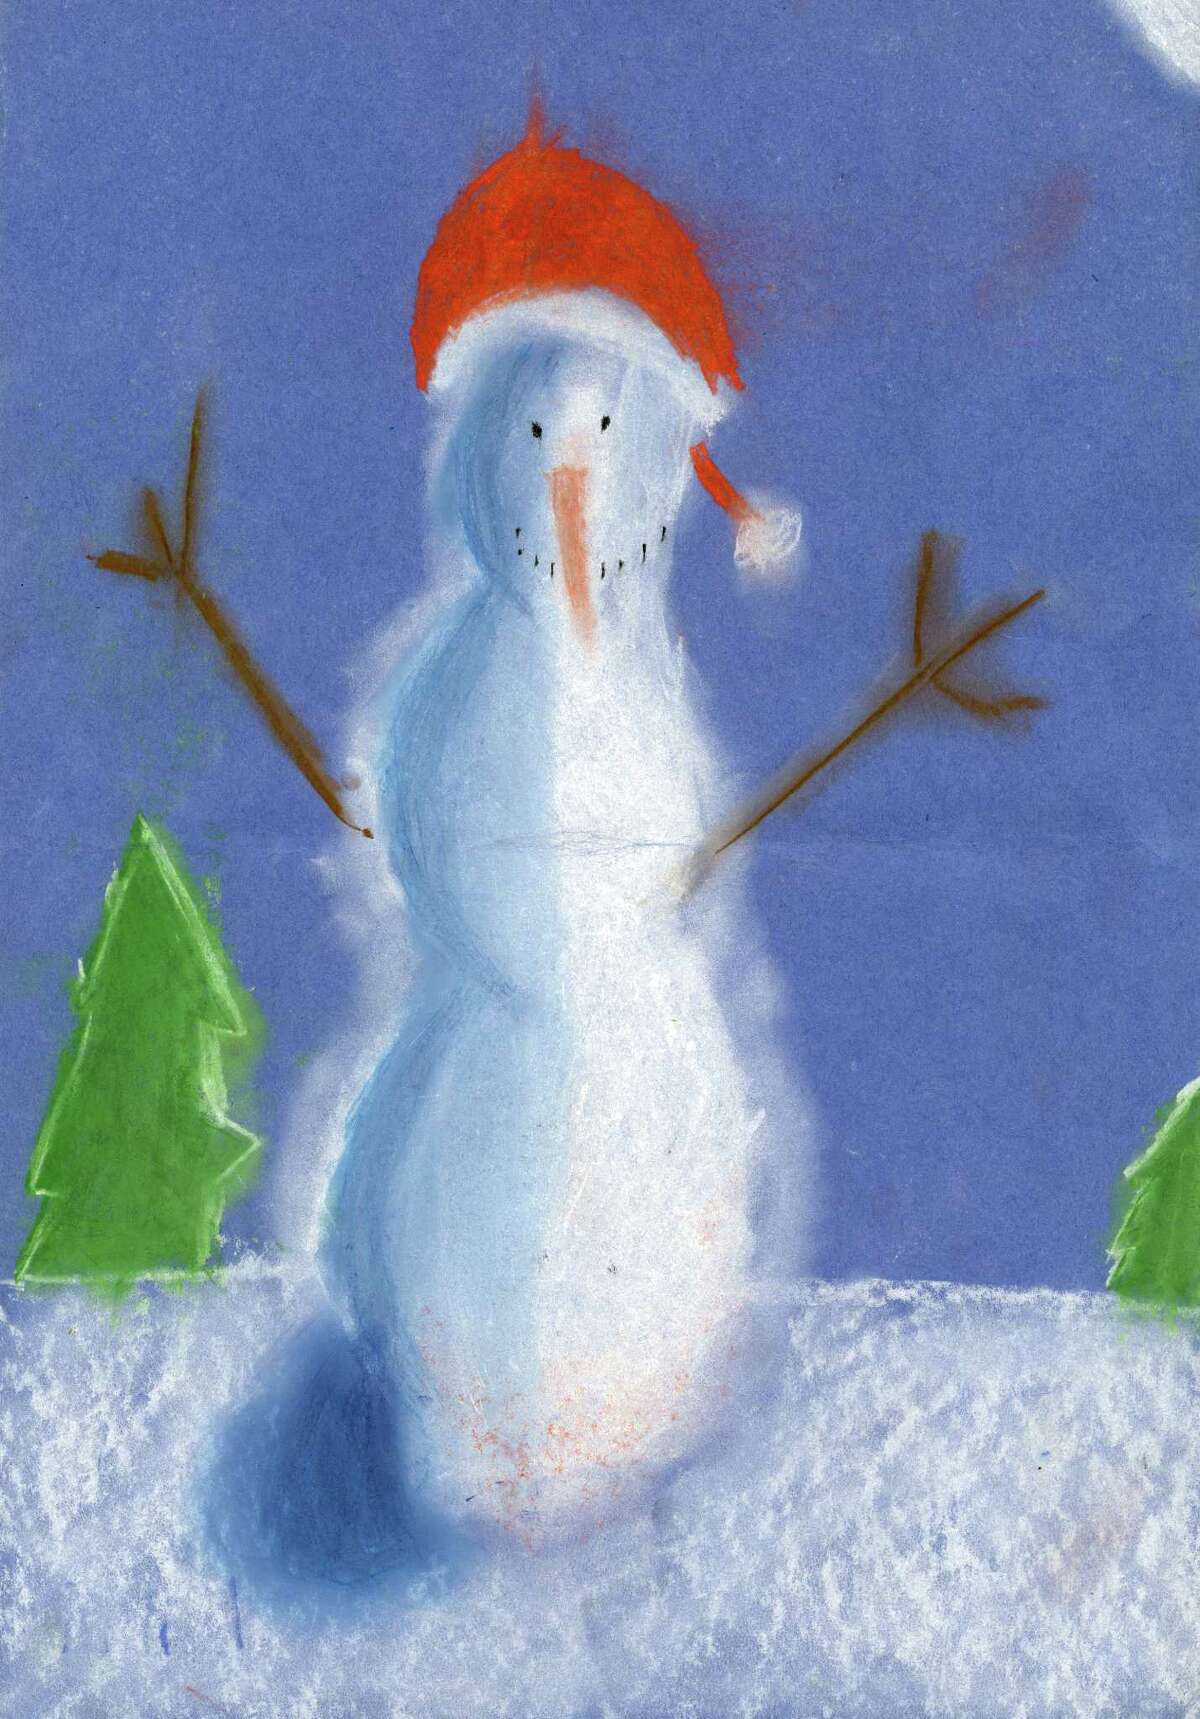 Lucas Rivera, a fifth-grader at Chango Elementary in the Shenendehowa Central Schools, was our grand prize winner in the Times Union's annual kids' holiday card contest in 2013.